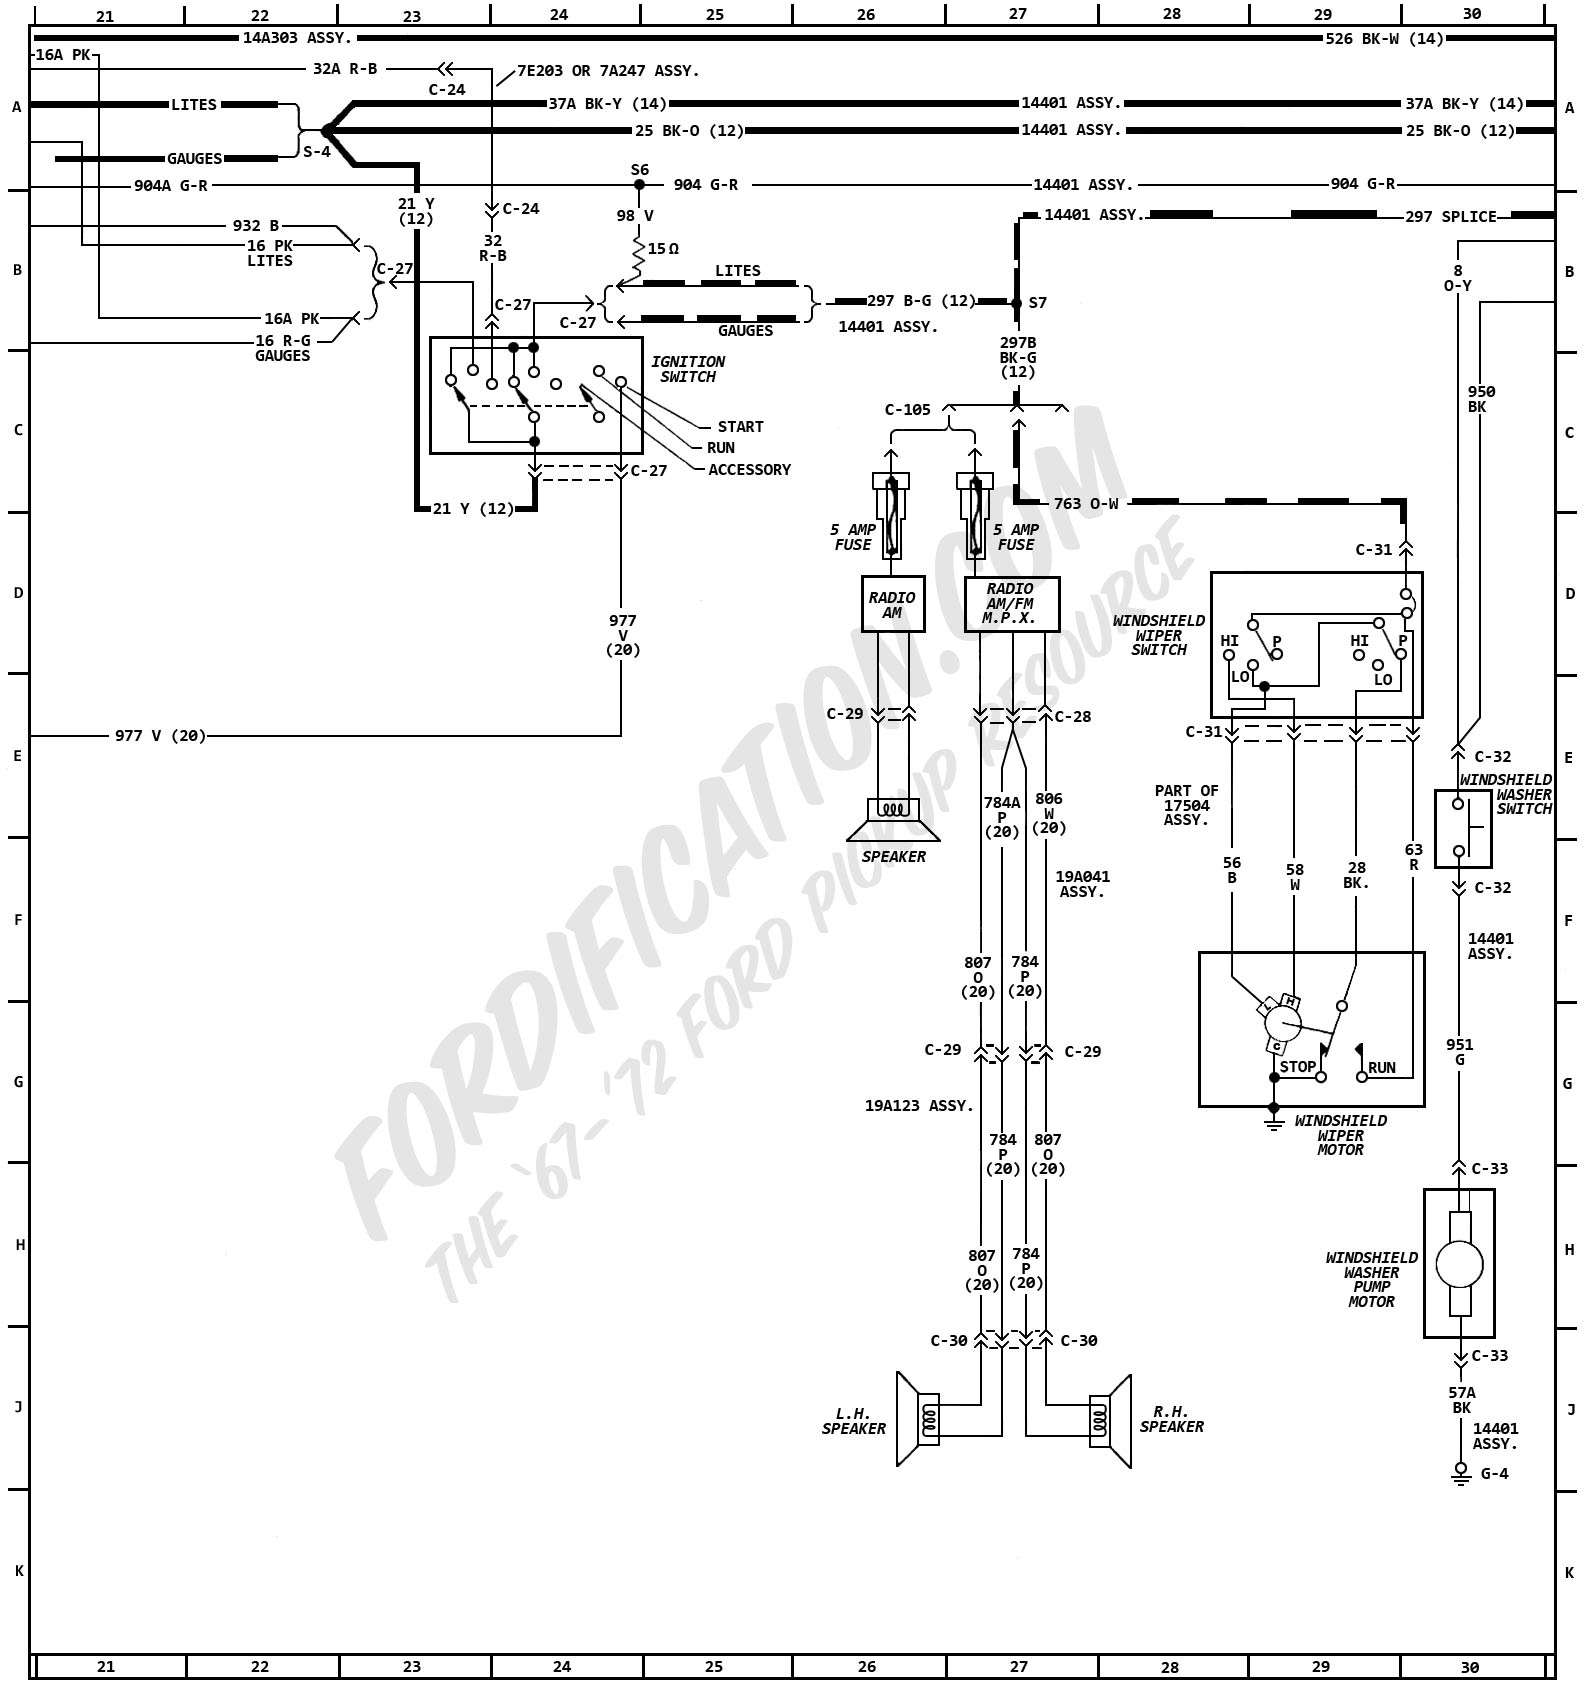 1969 Ford Ltd Wiring Diagram Schematic Diagrams Schematics 1971 Bronco F100 Voltage Gauge Books Of U2022 Rh Mattersoflifecoaching Co F 250 1989 Mustang